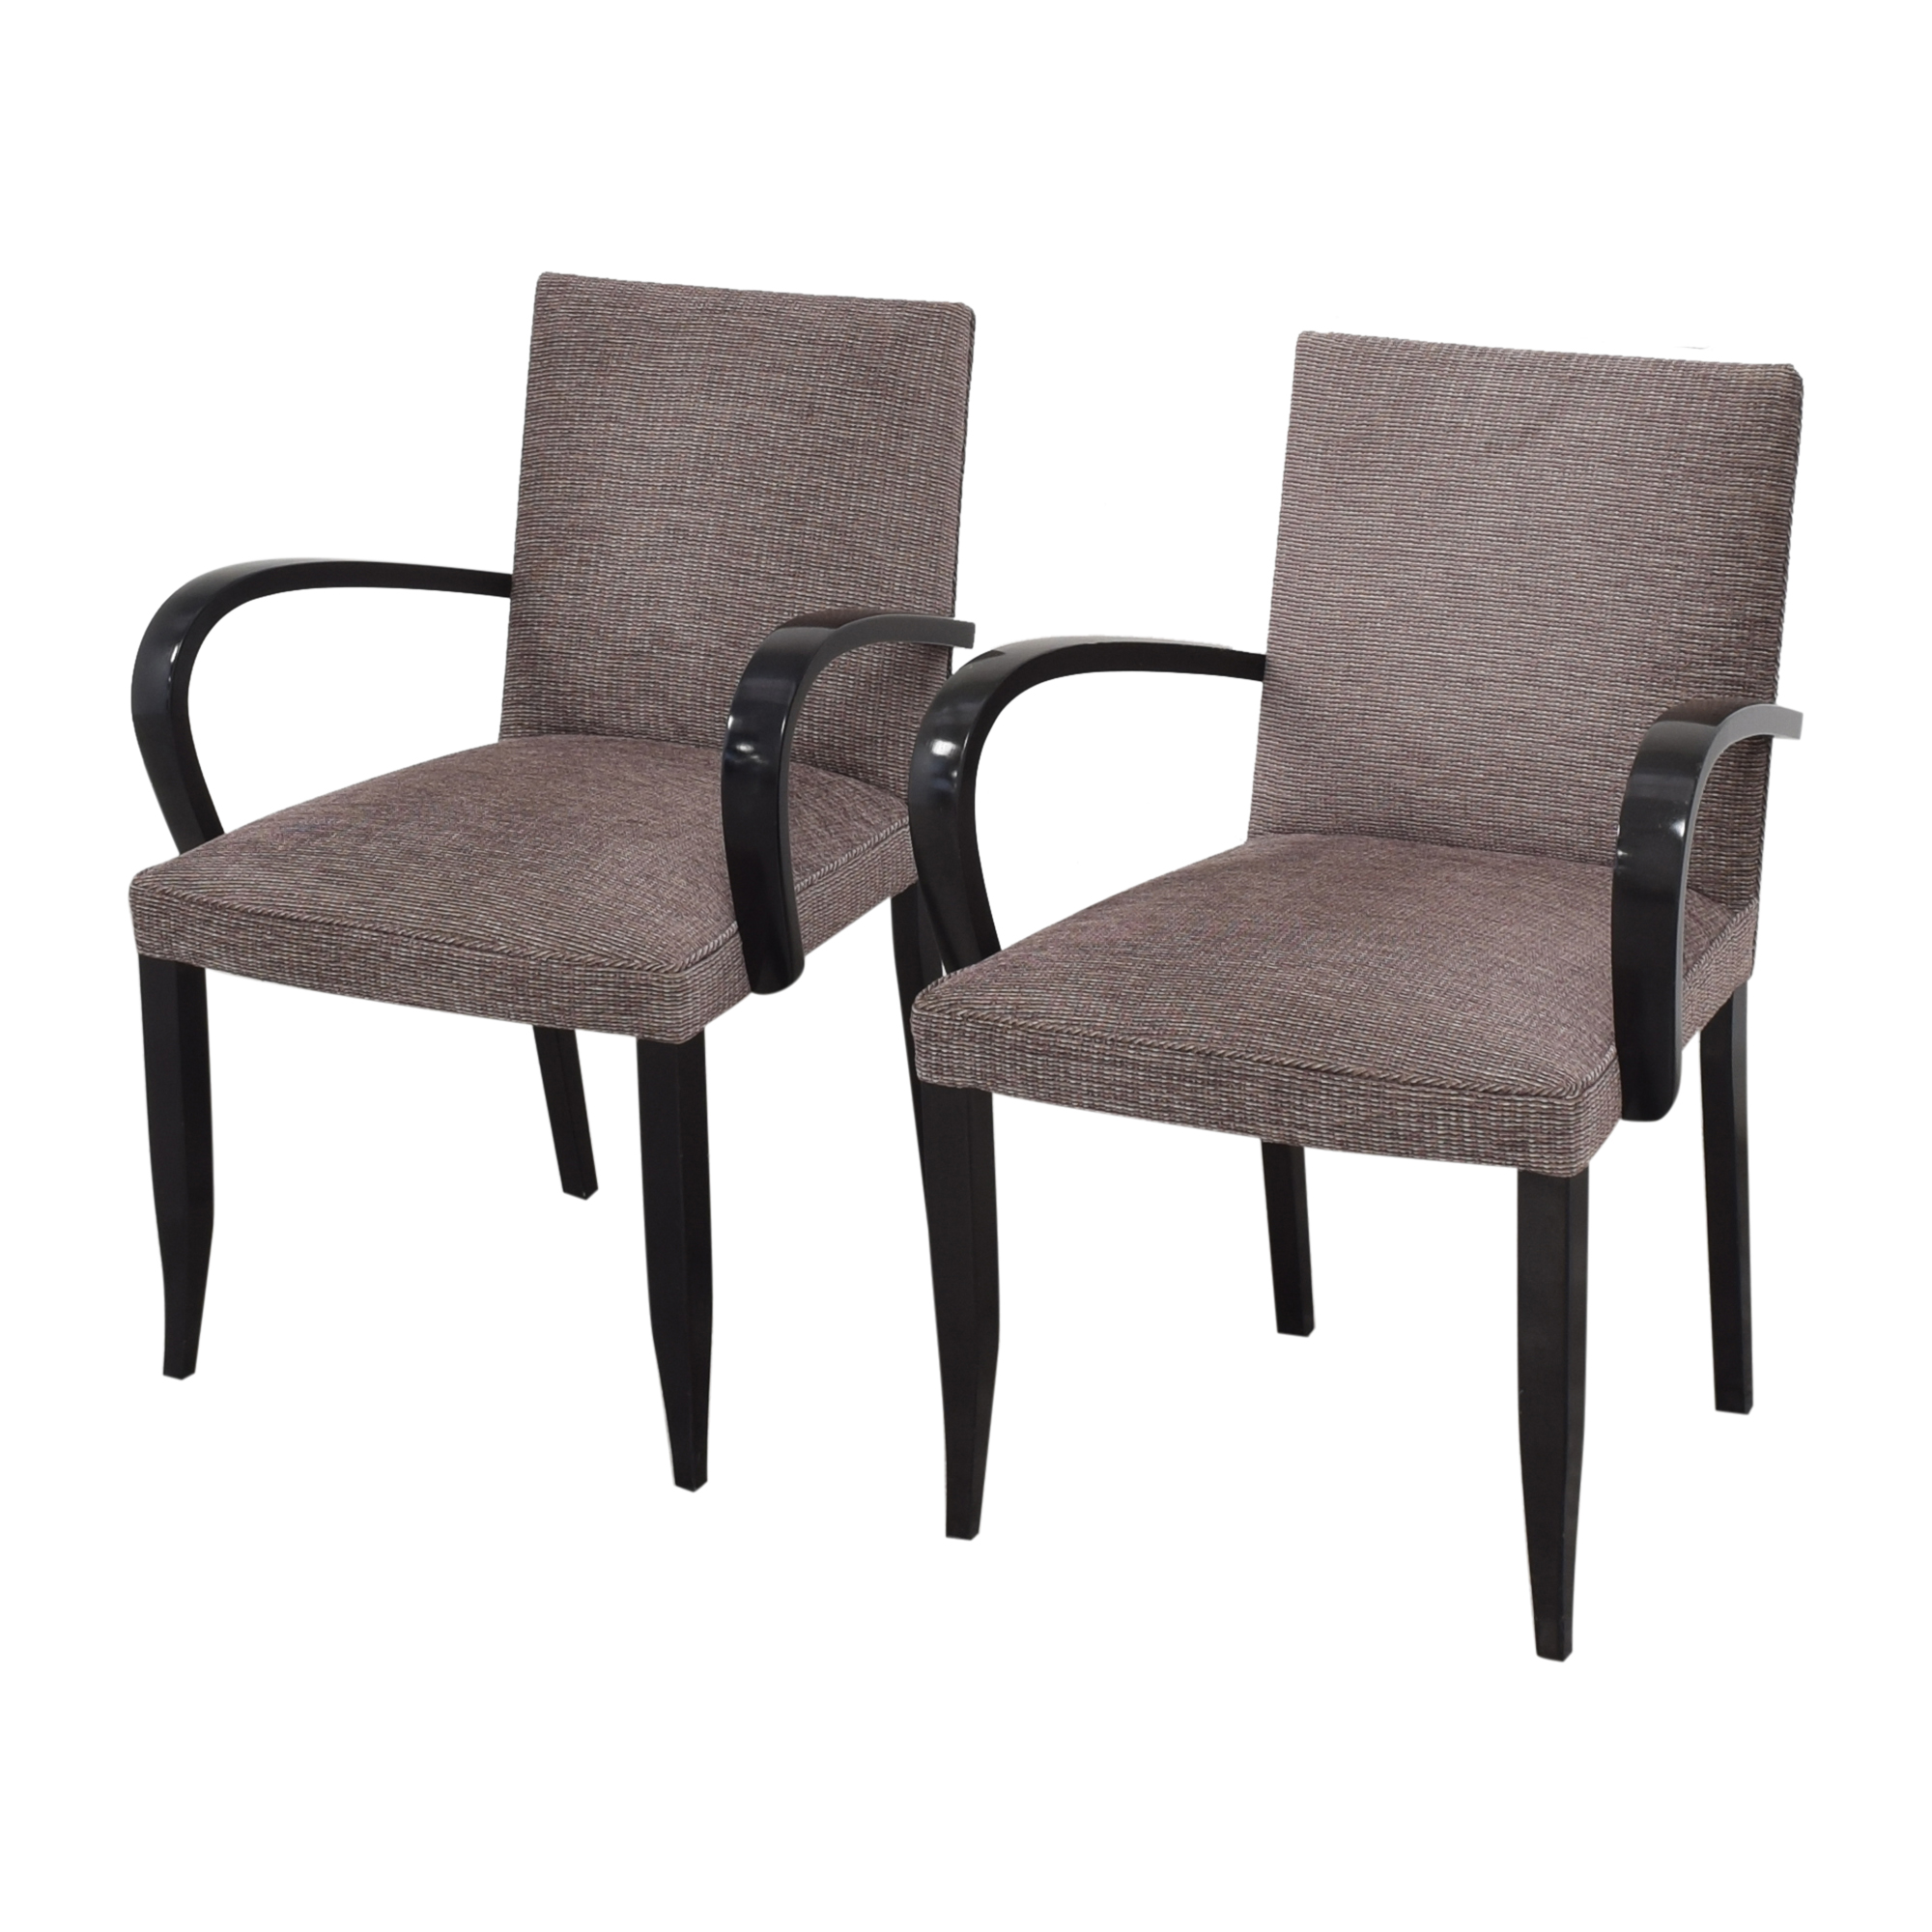 Office Arm Chairs used